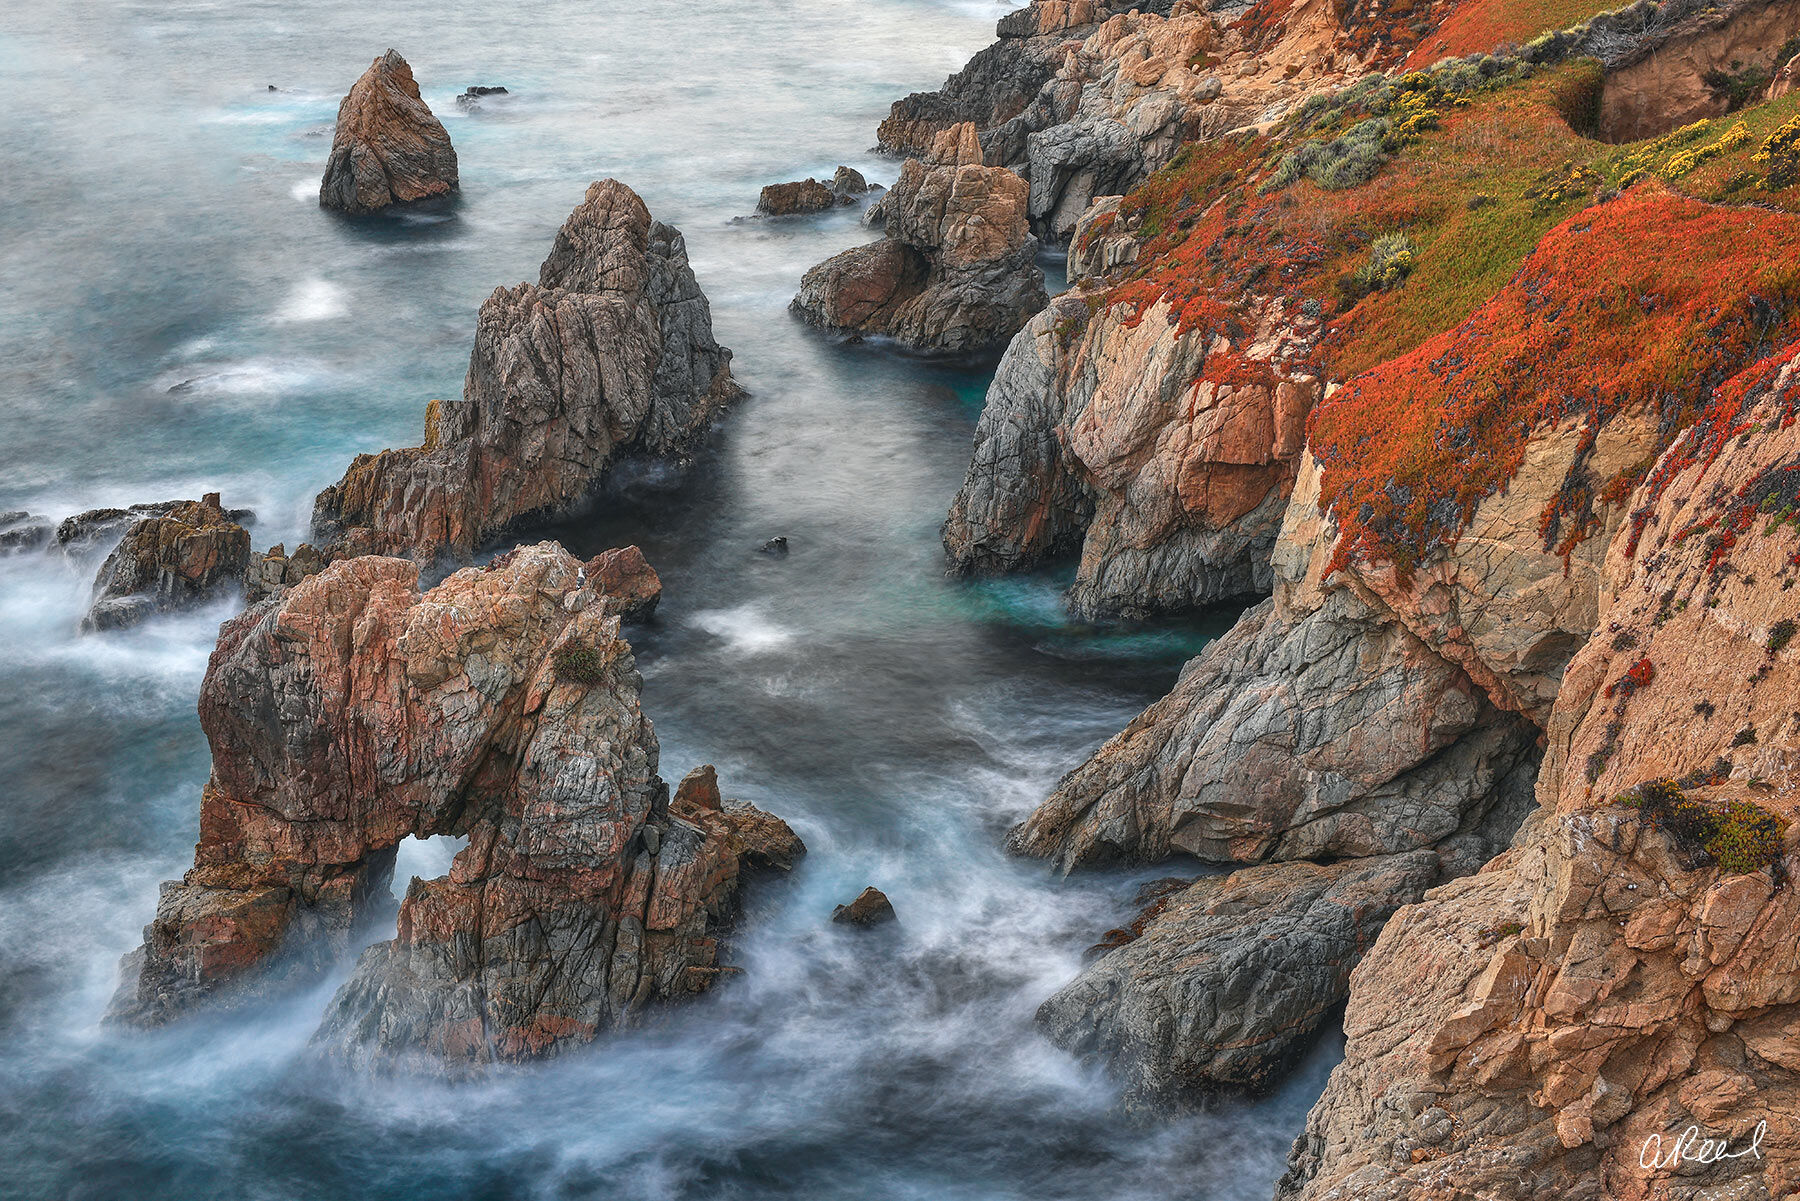 Adorn your walls with Aaron Reed's limited edition photography print, Stone Castles, from his Oceans & Rivers Luxury Art collection...